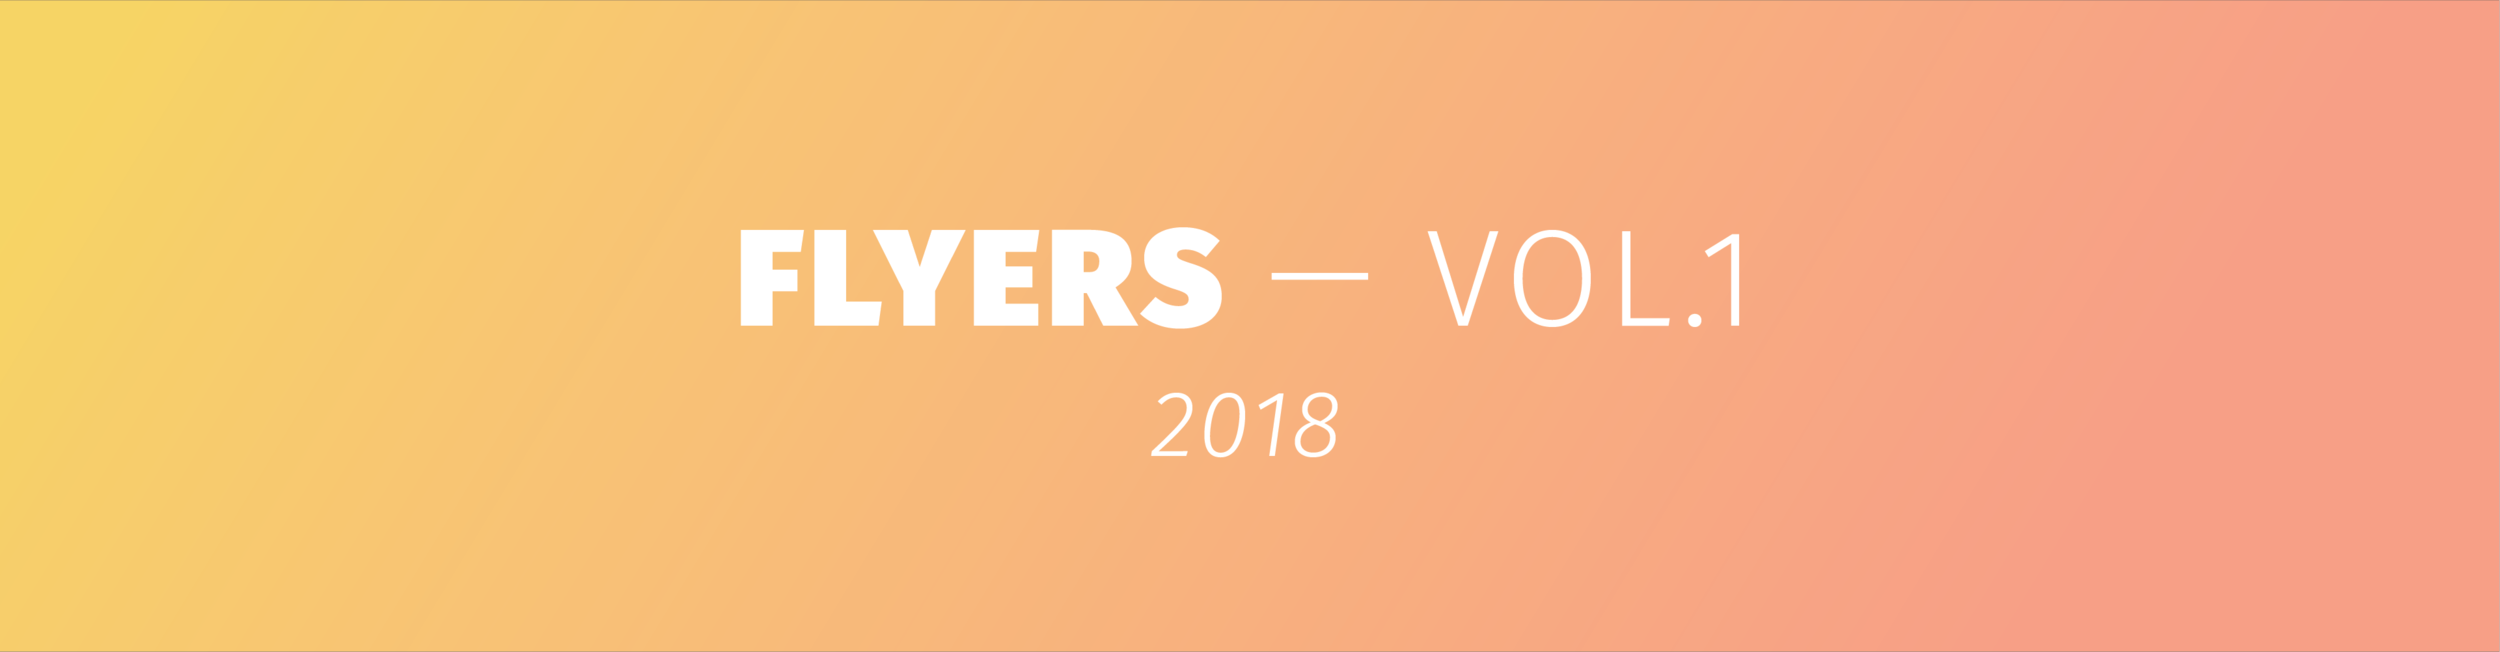 Flyers Vol.1 (2018) - Cover